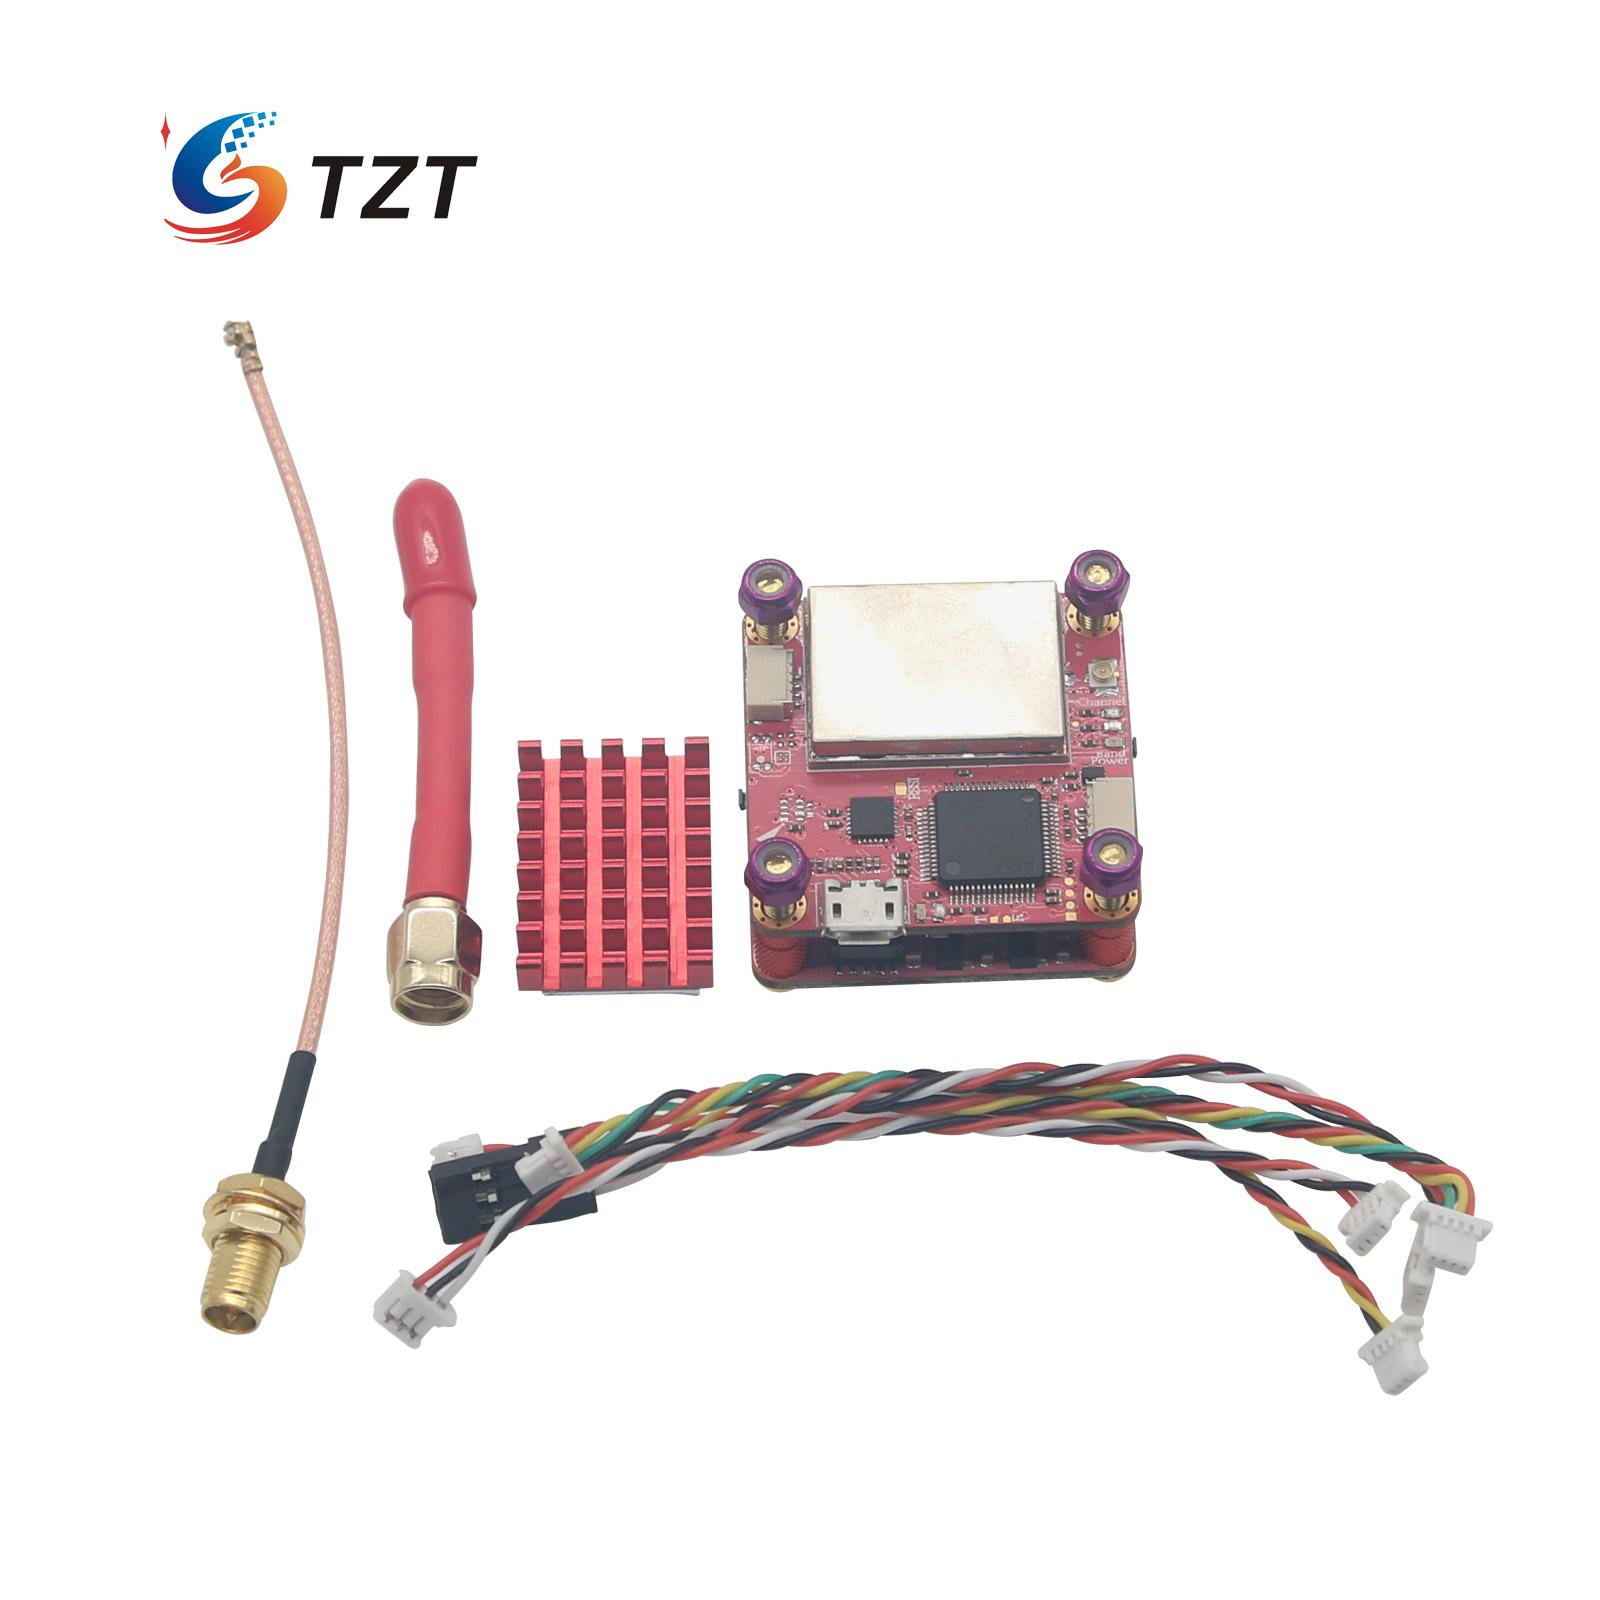 Flytower PRO F3/F4 Flight Controller Board OSD BEC 4 in 1 BLHeli_S Dshot 600 ESC VTX with Audio high quality flytower f3 flight controller 25 200 400mw switchable fpv transmitter osd dshot 30a 4 in 1 esc pdb